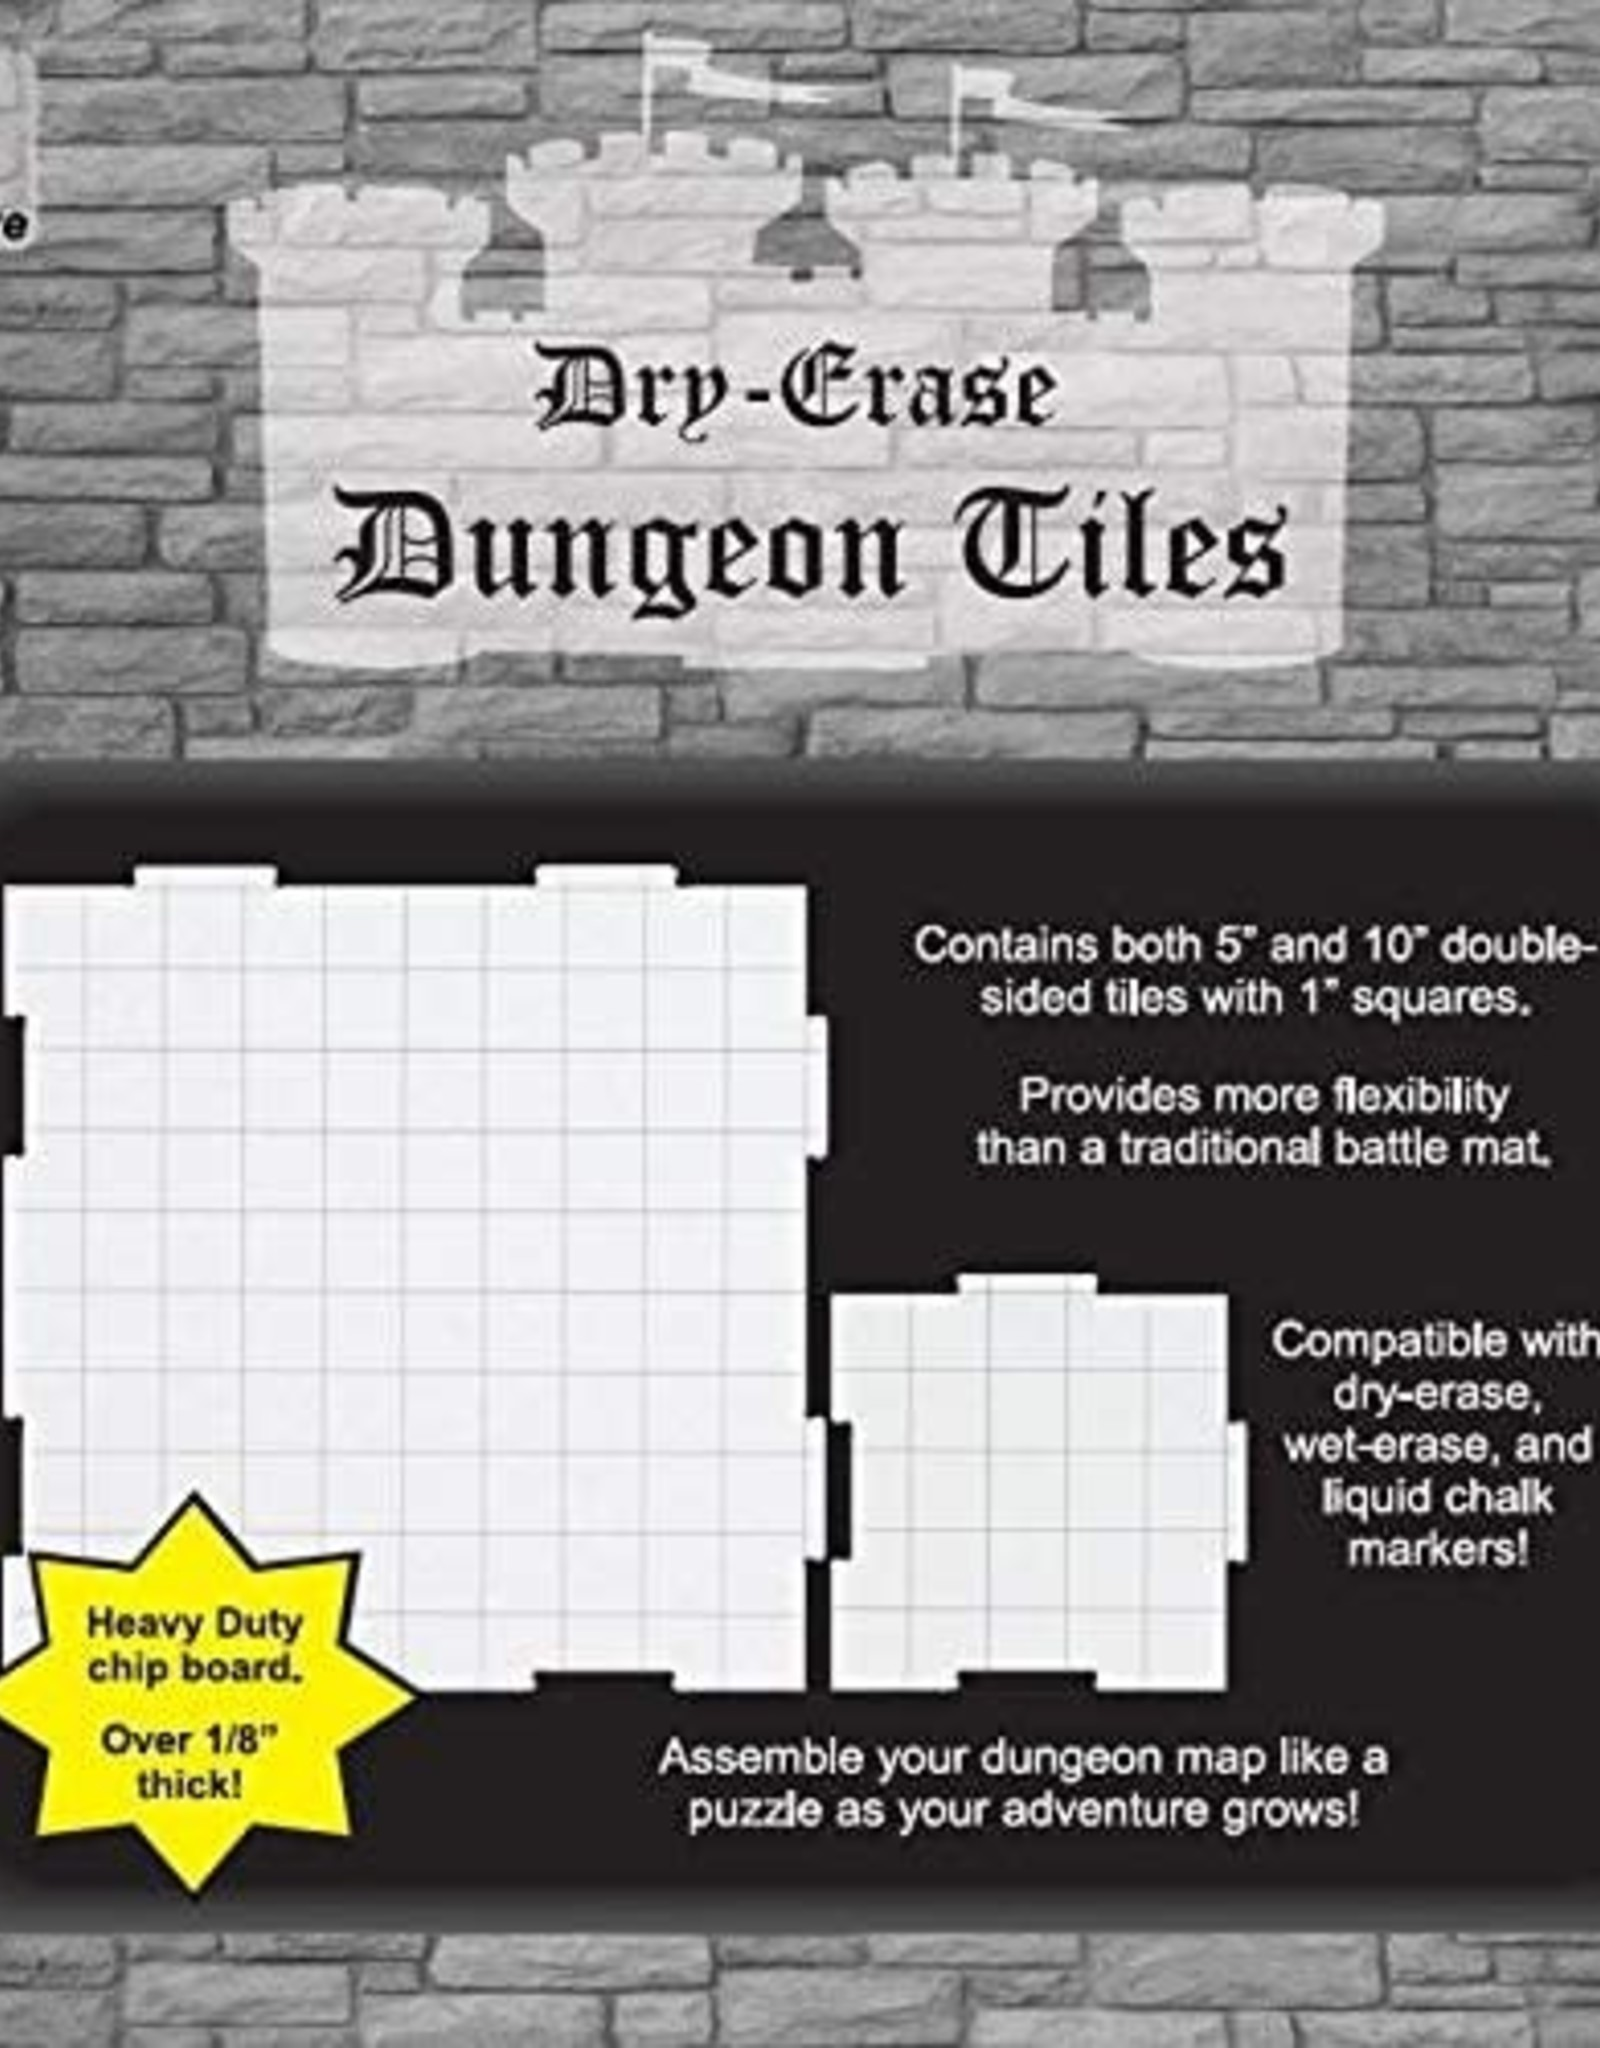 "Roll 4 Initiative Dry Erase Dungeon Tiles Combo 10"" & 5"" tiles"